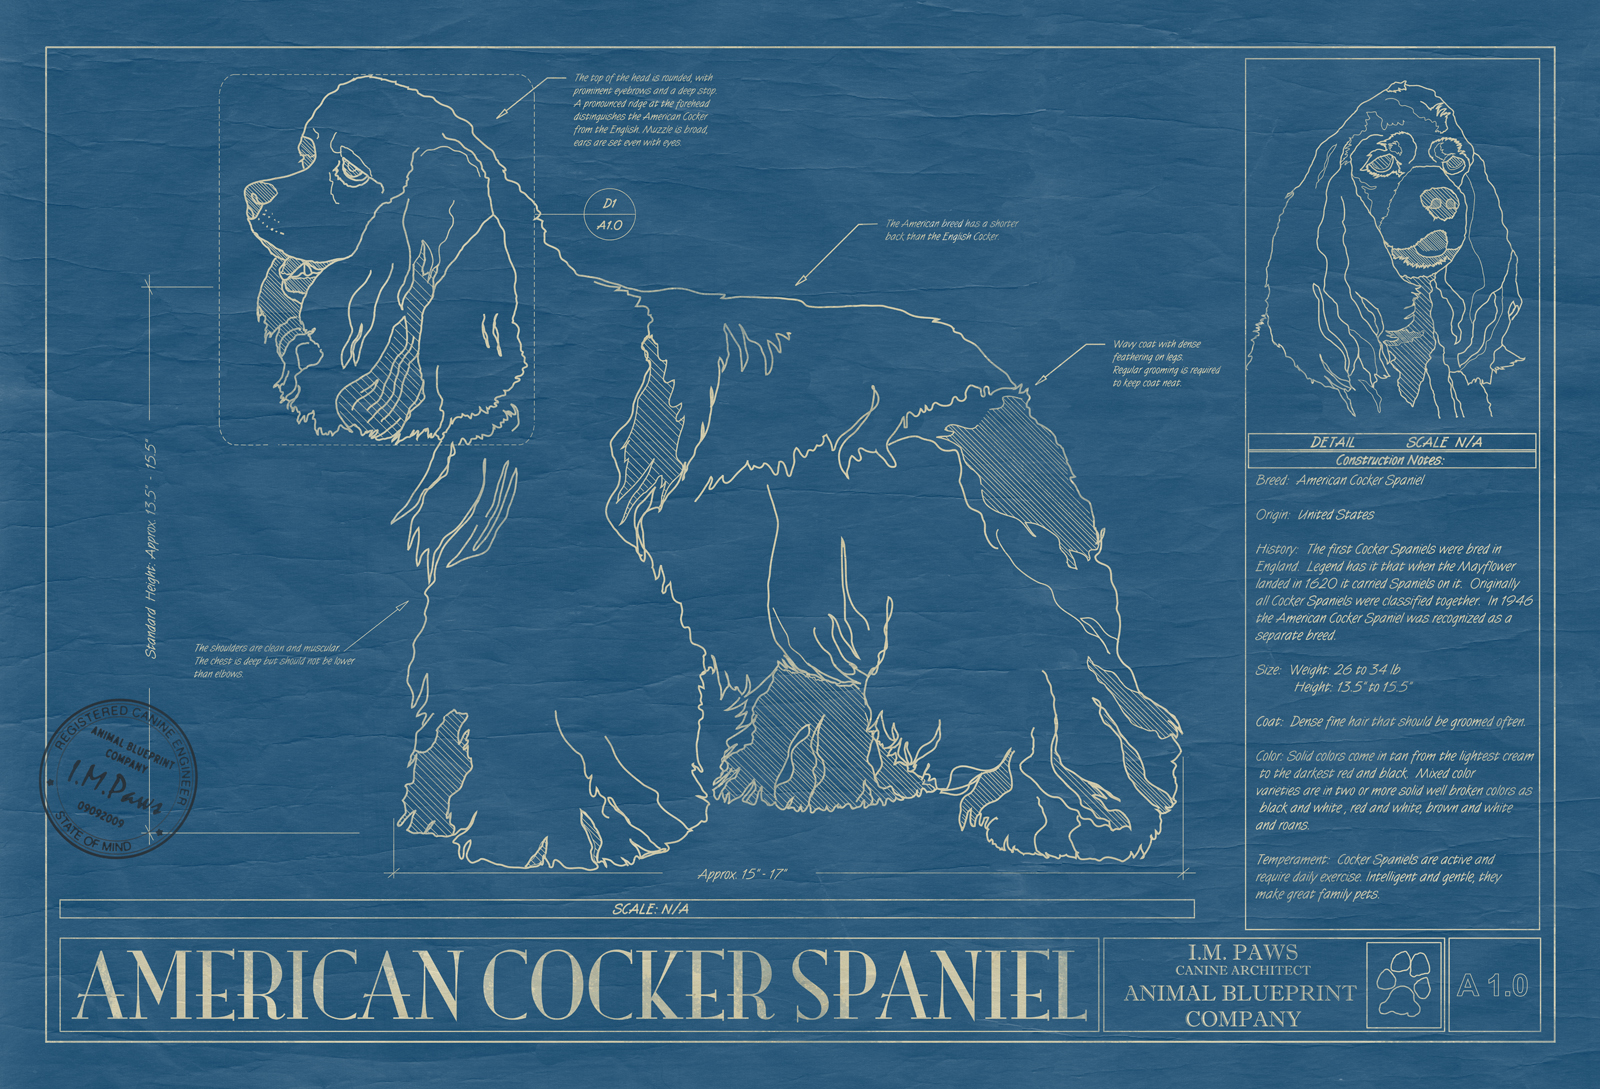 Cocker spaniel american animal blueprint company american cocker spaniel dog blueprint malvernweather Images